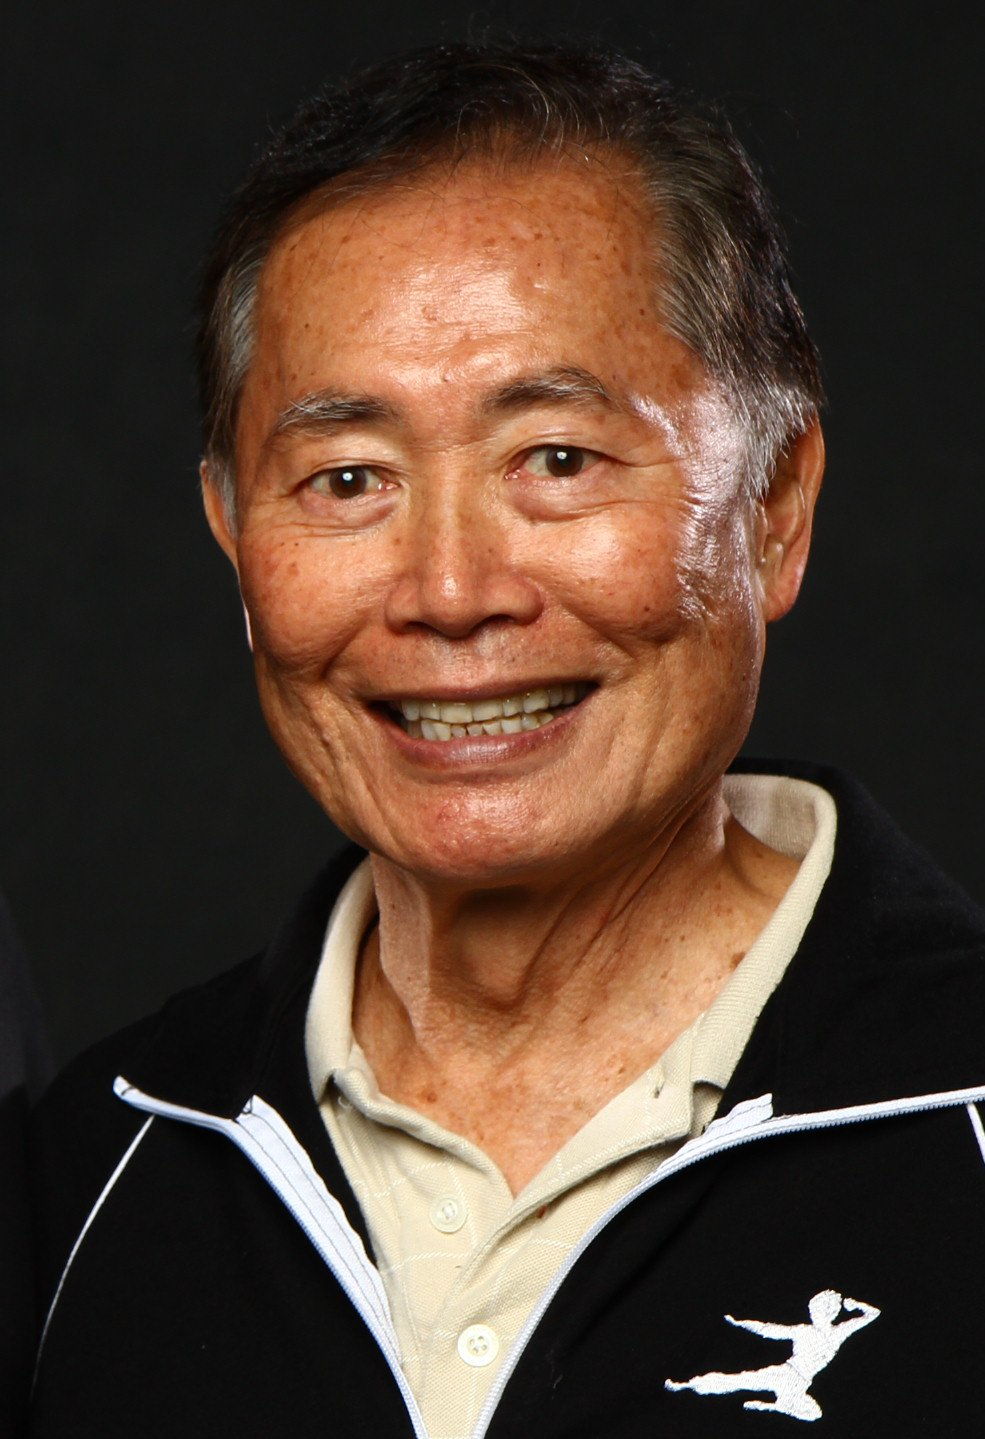 Florida Supercon from Ft. Lauderdale, USA, George Takei 2013, CC BY 2.0